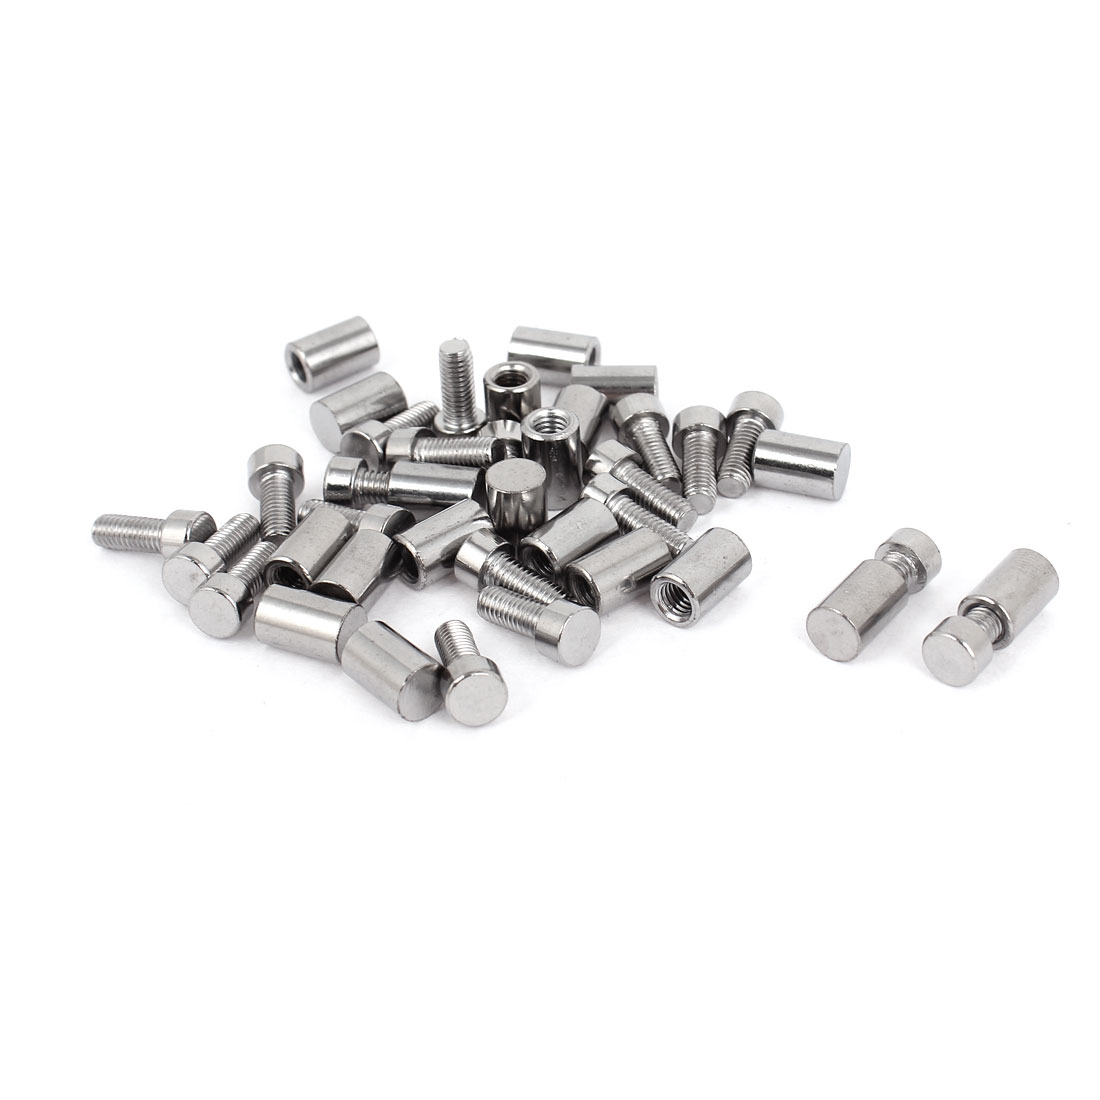 8mm x 20mm Stainless Steel Standoff Pins Screw Glass Picture Poster Frame Hanger 20 Pcs